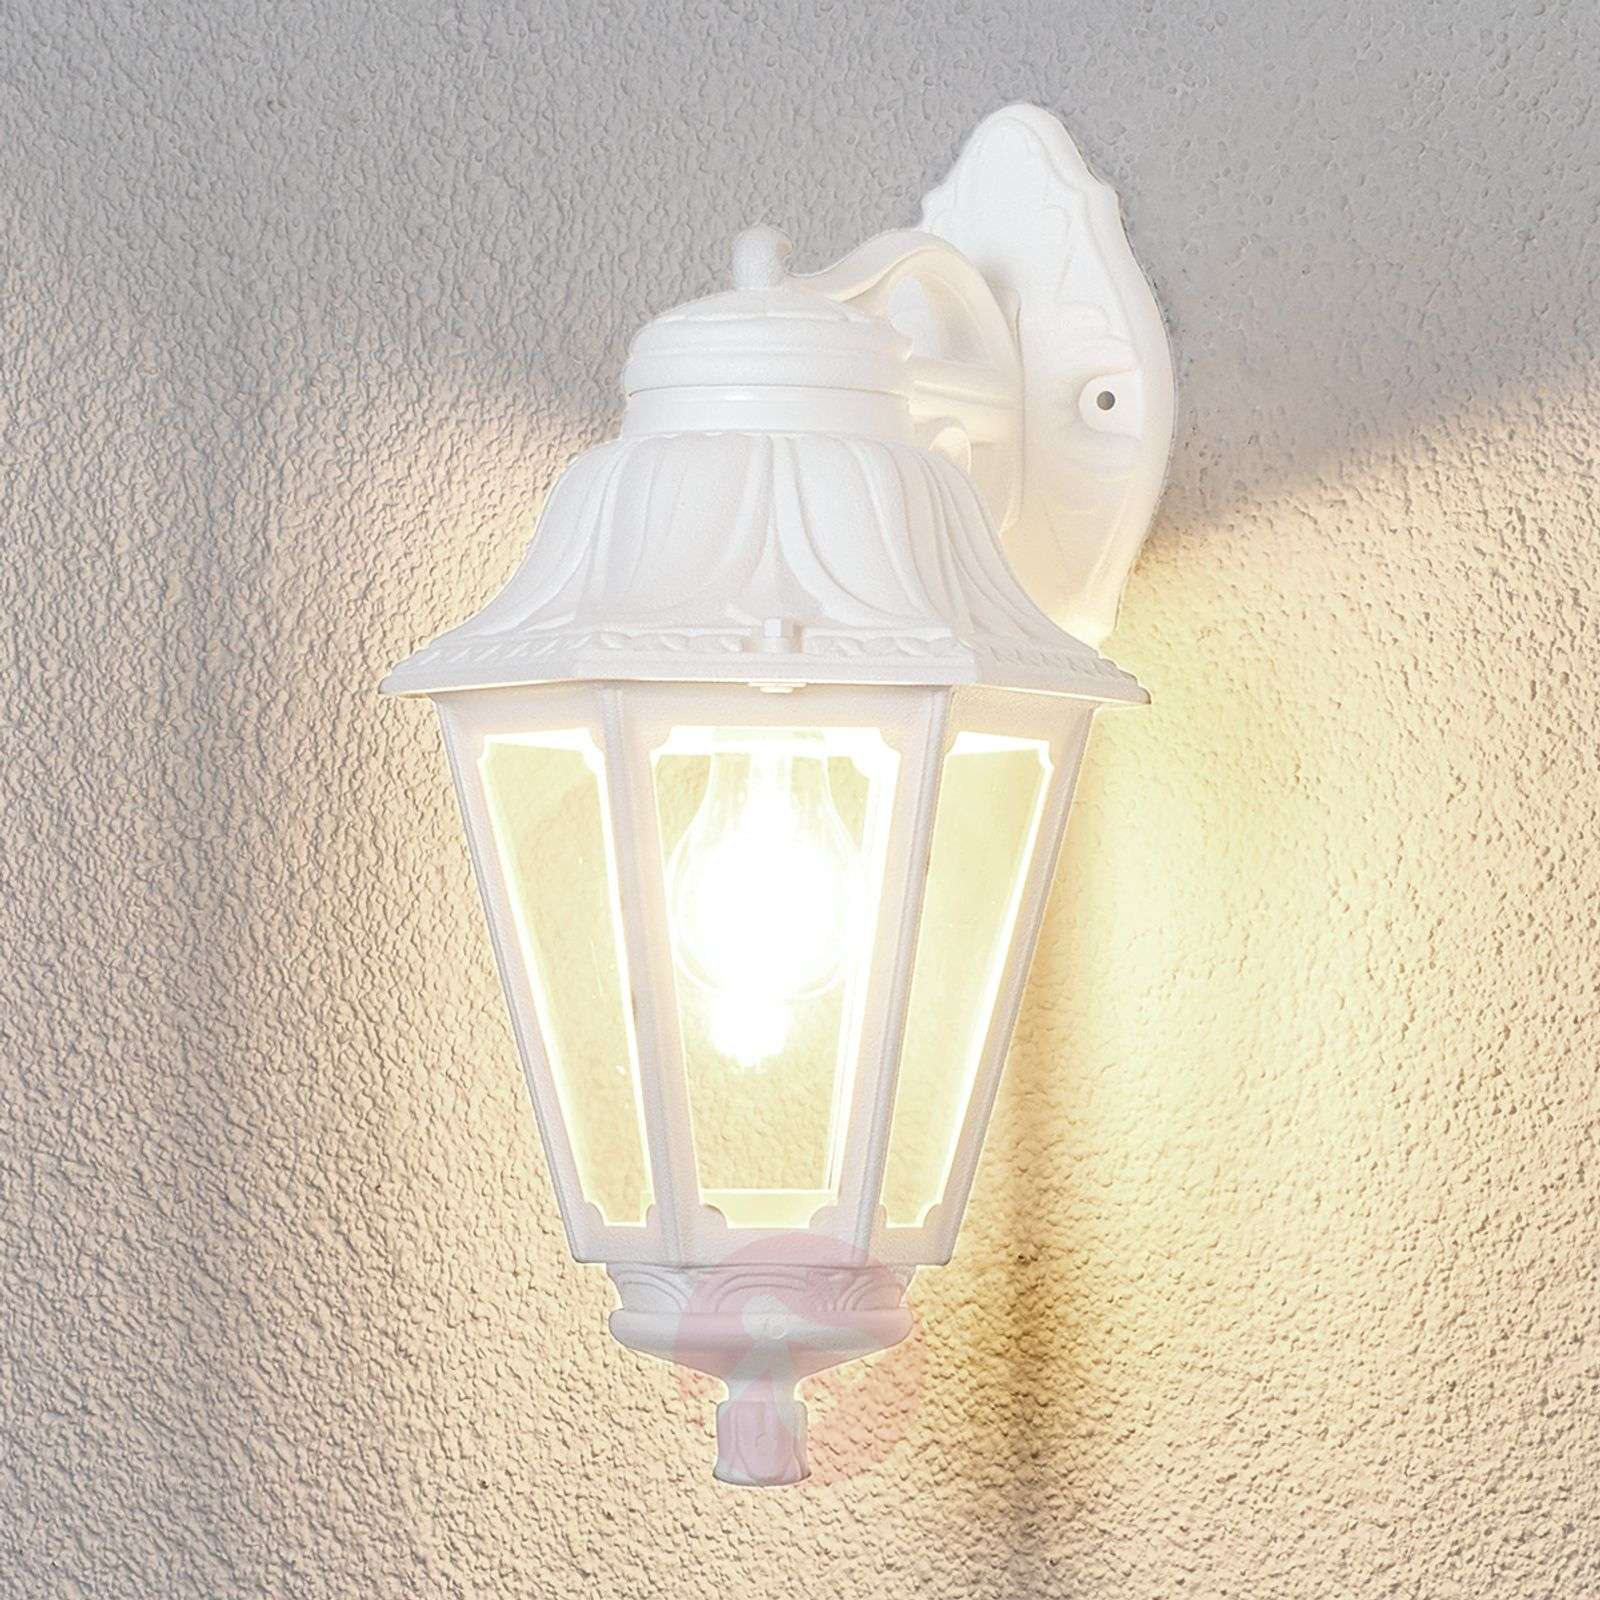 LED outdoor wall light Bisso Anna, lantern down-3538048-01